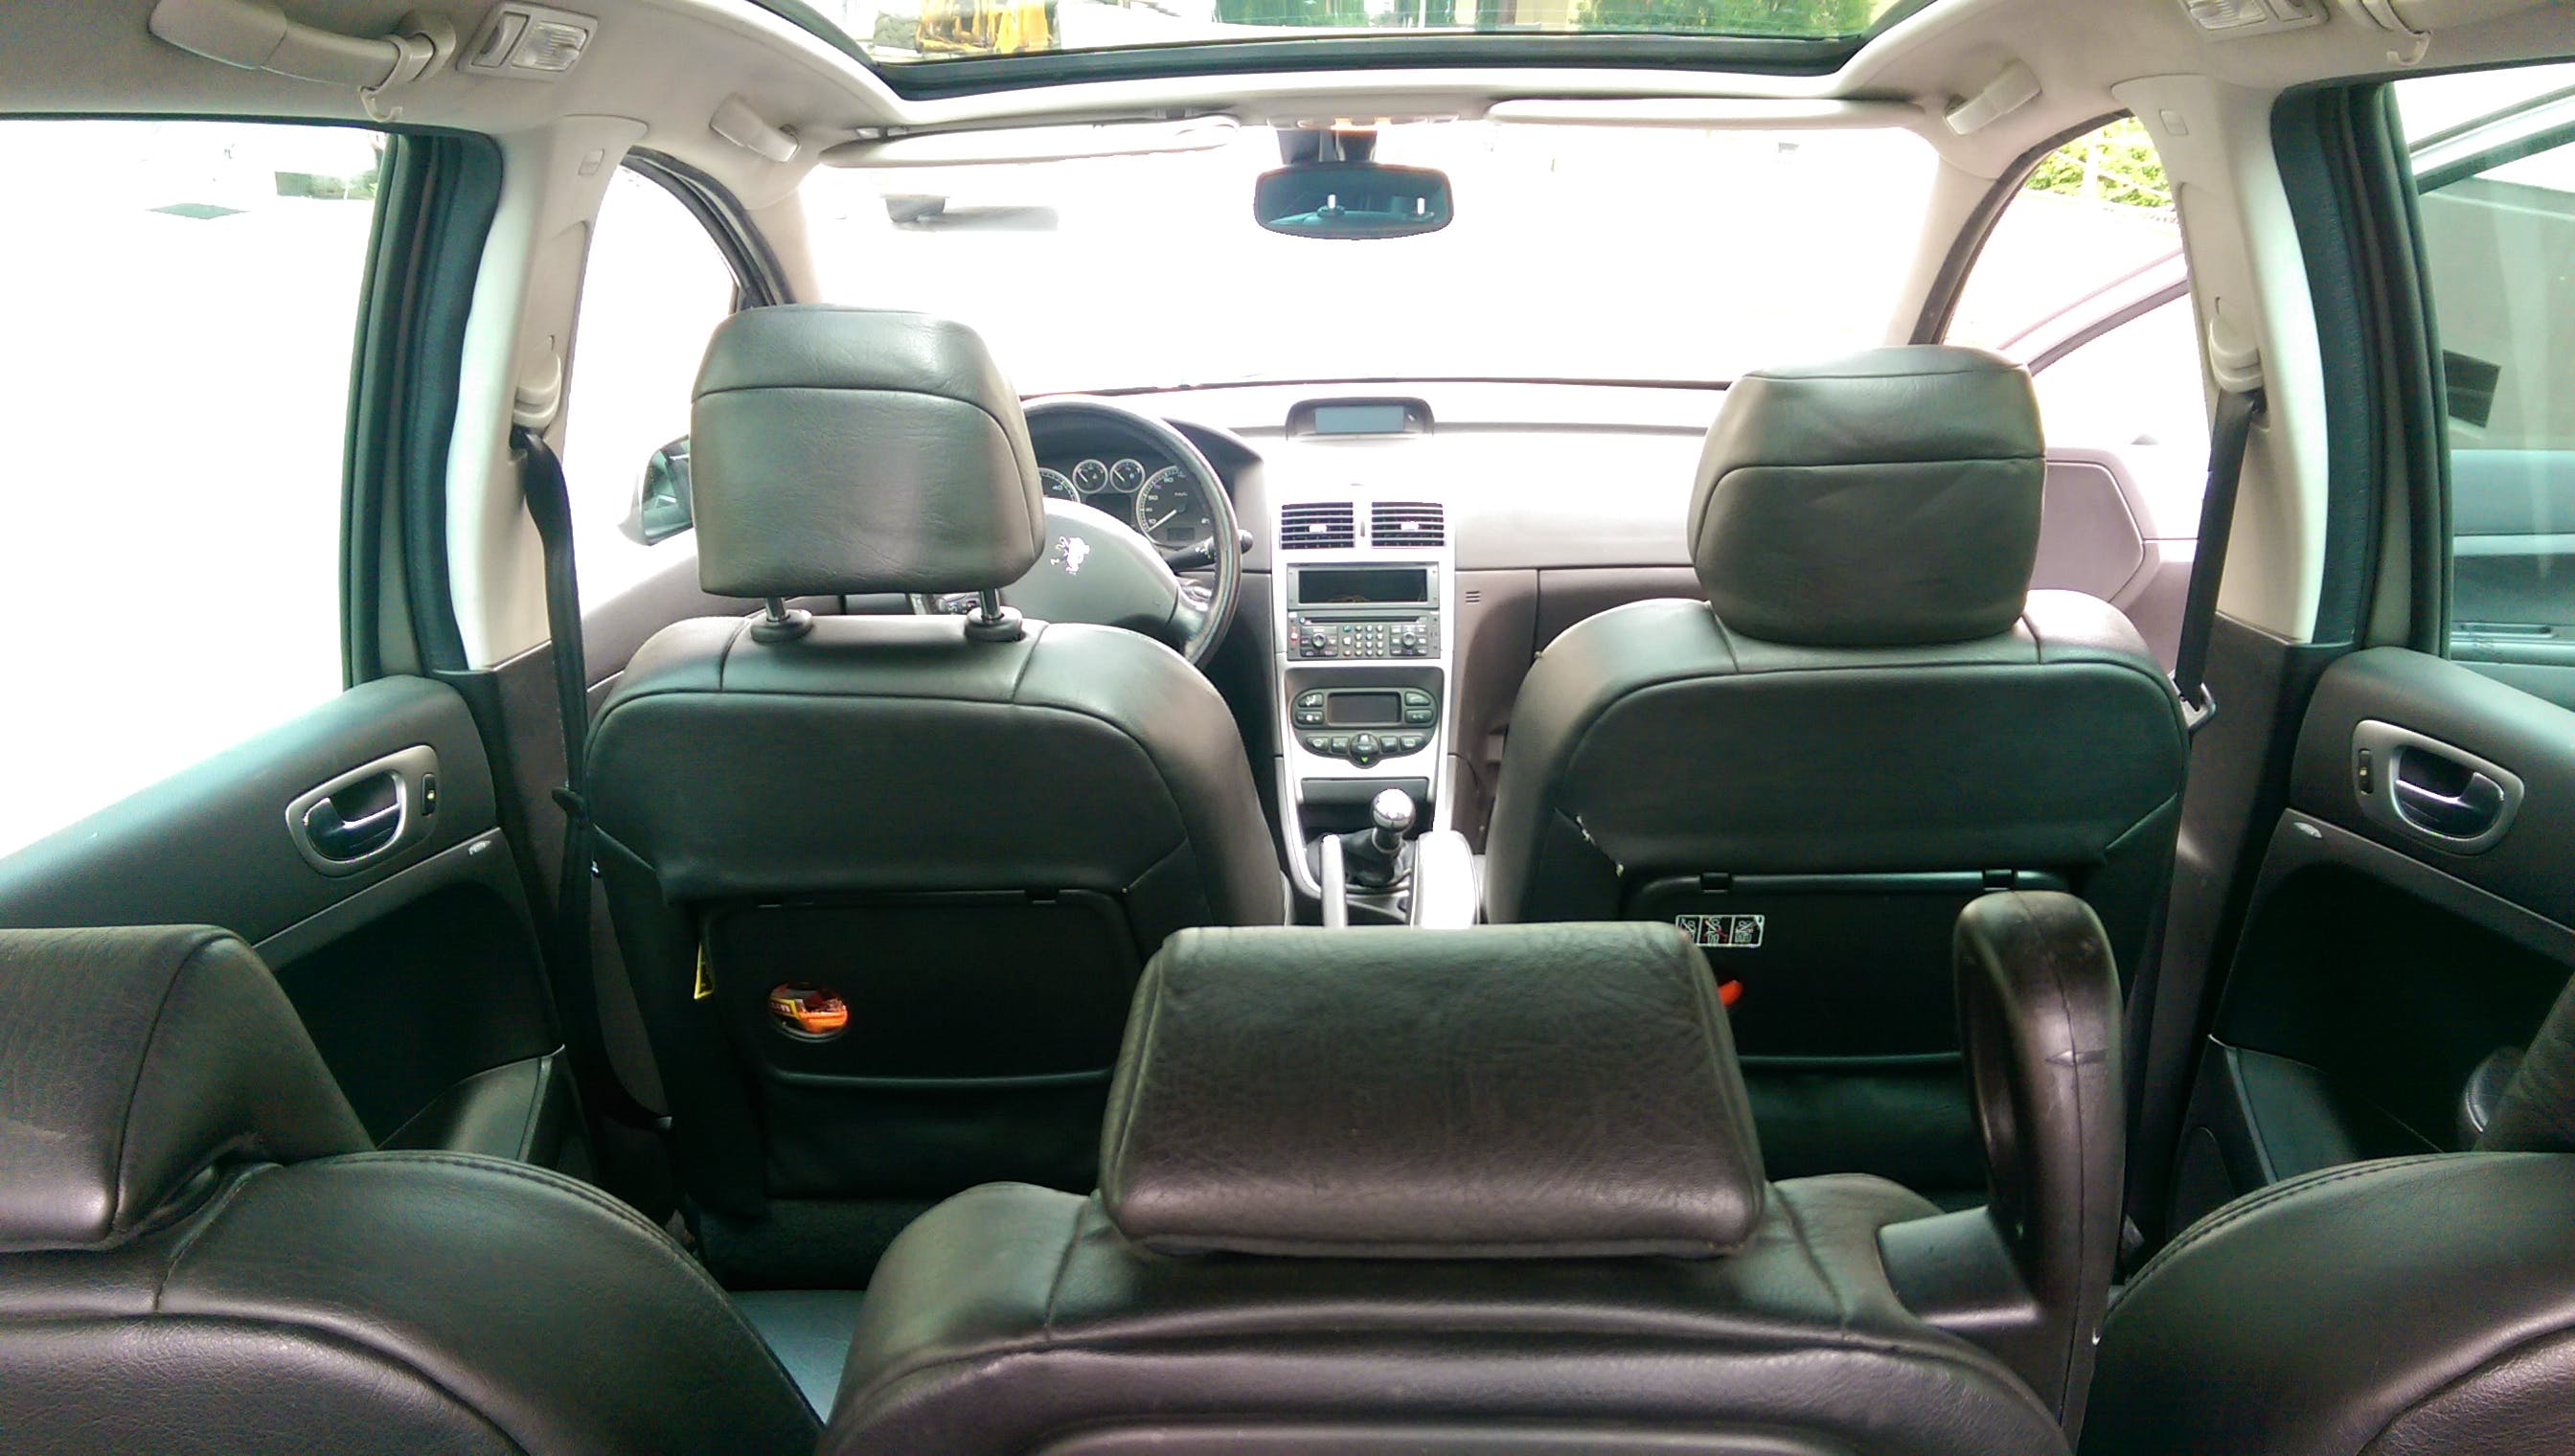 Peugeot 307 SW 2.0 HDi 110 PS mit CD-Player